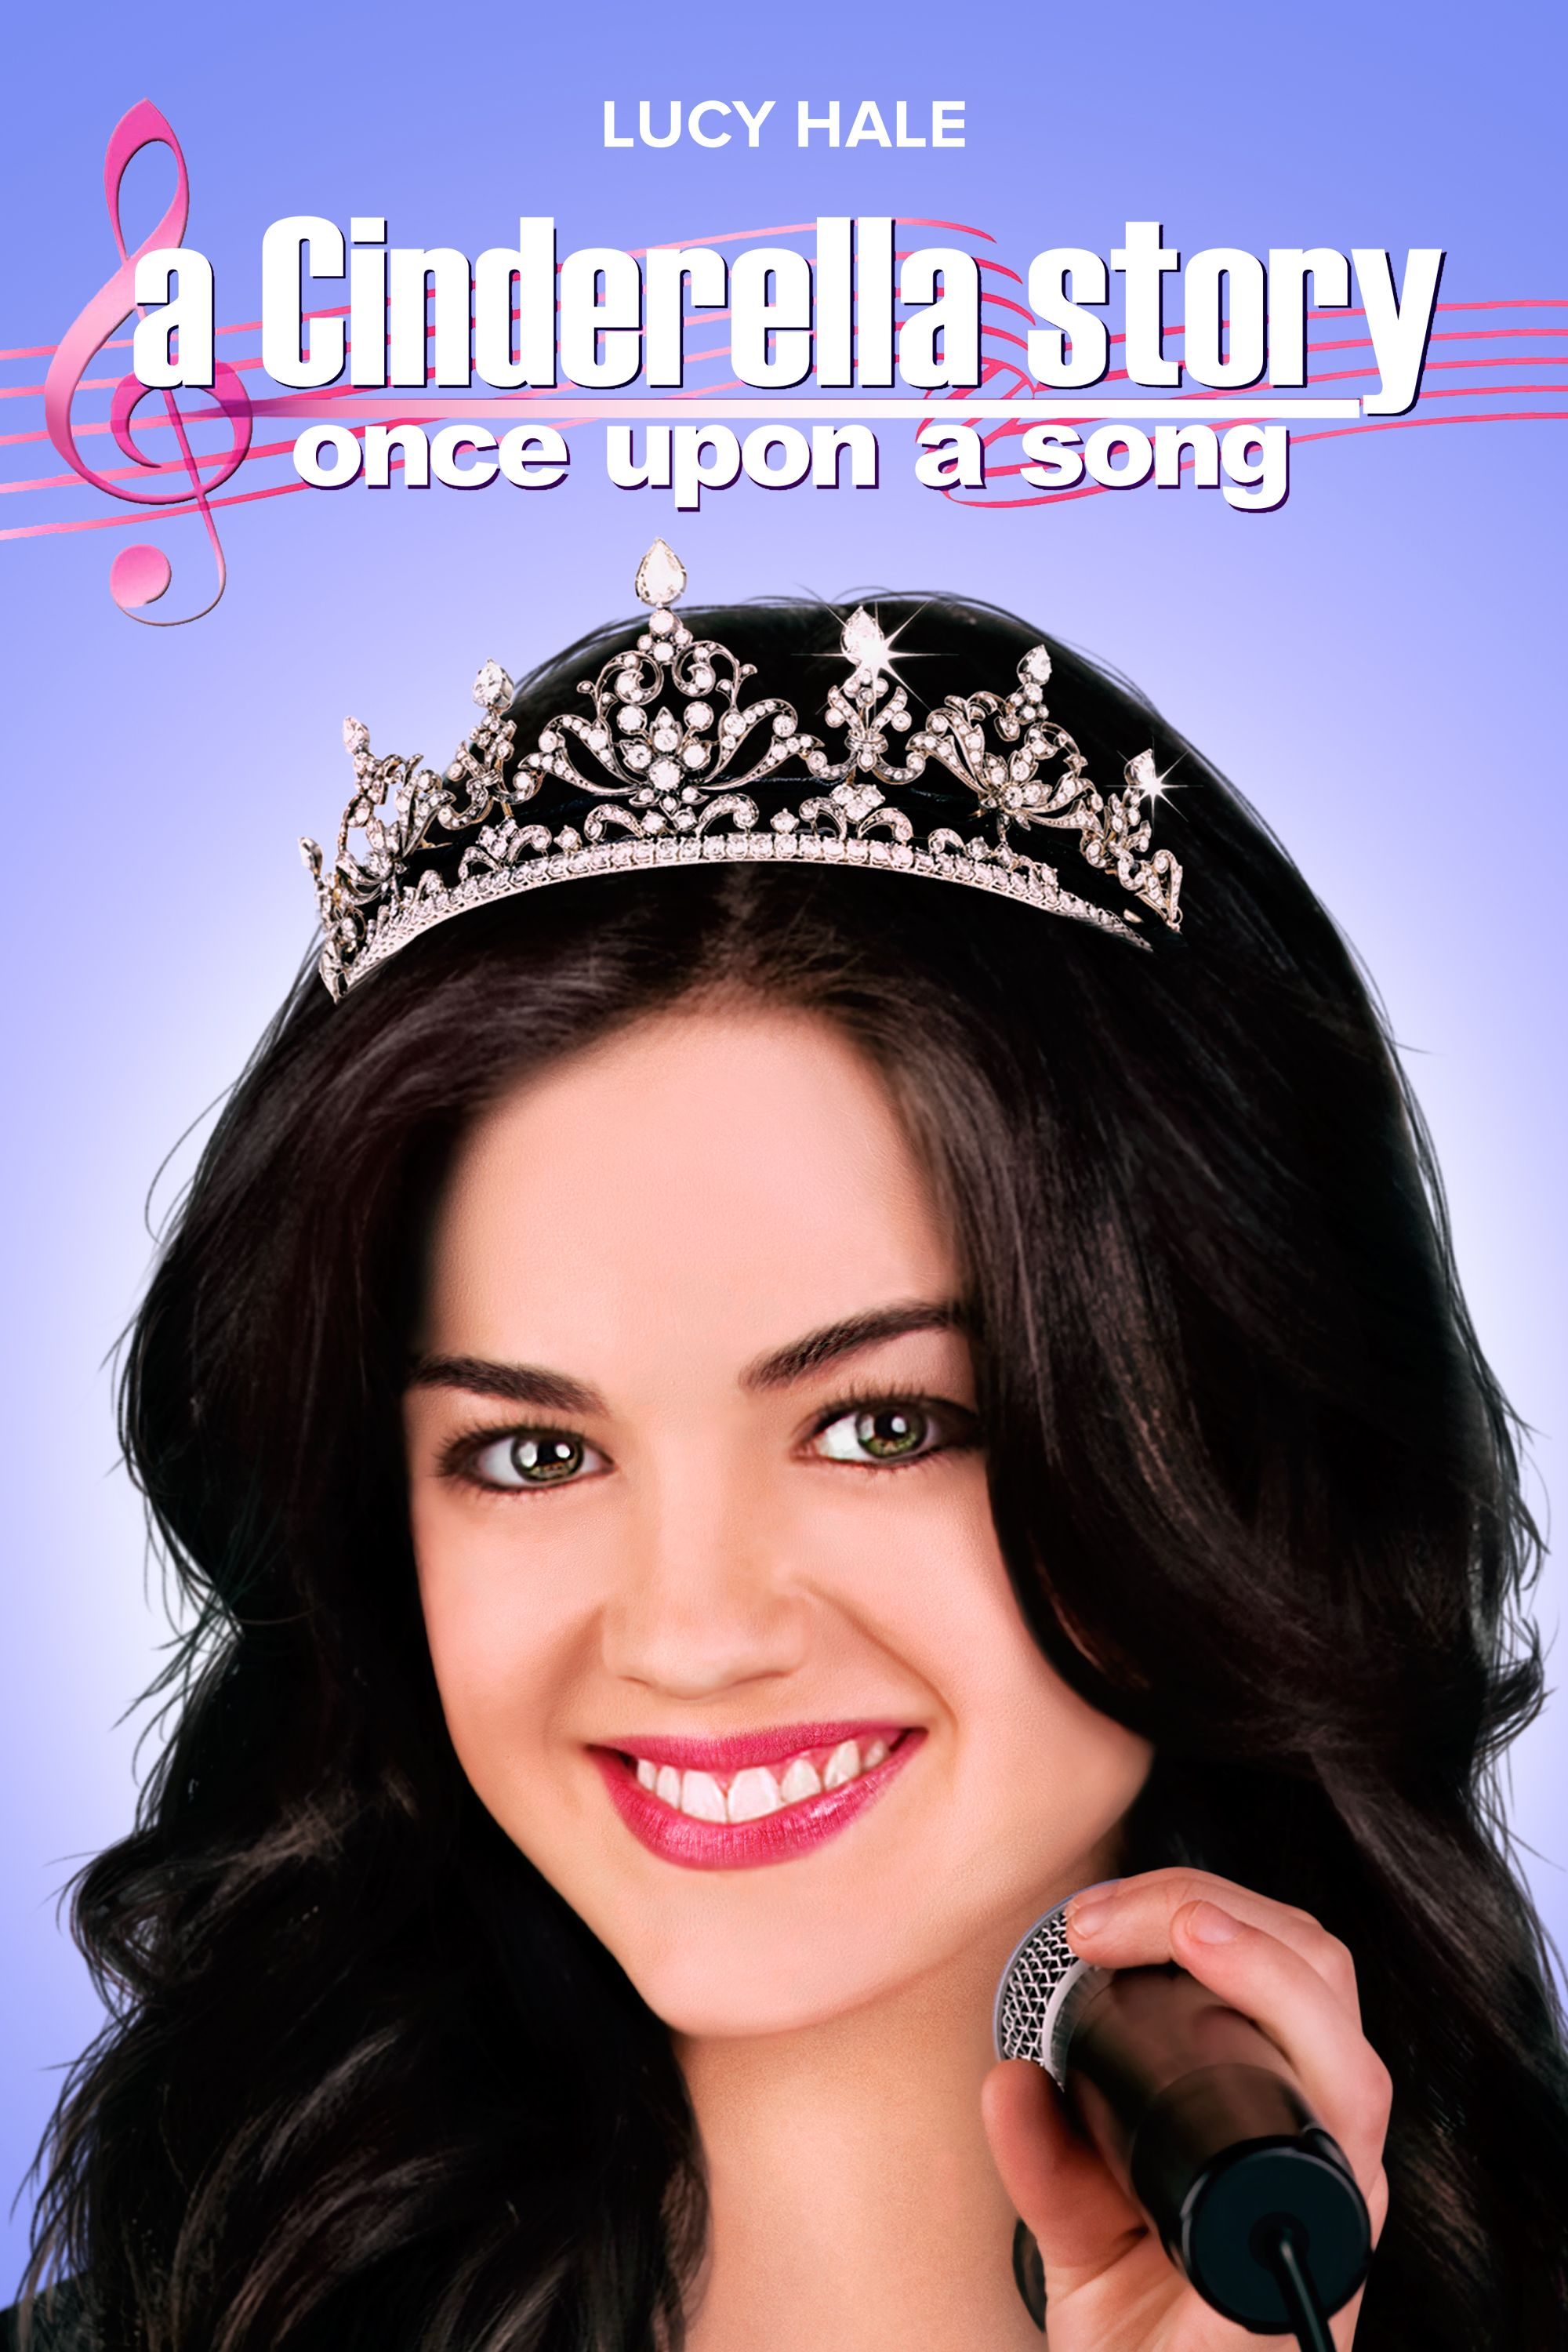 a cinderella story lucy hale full movie free